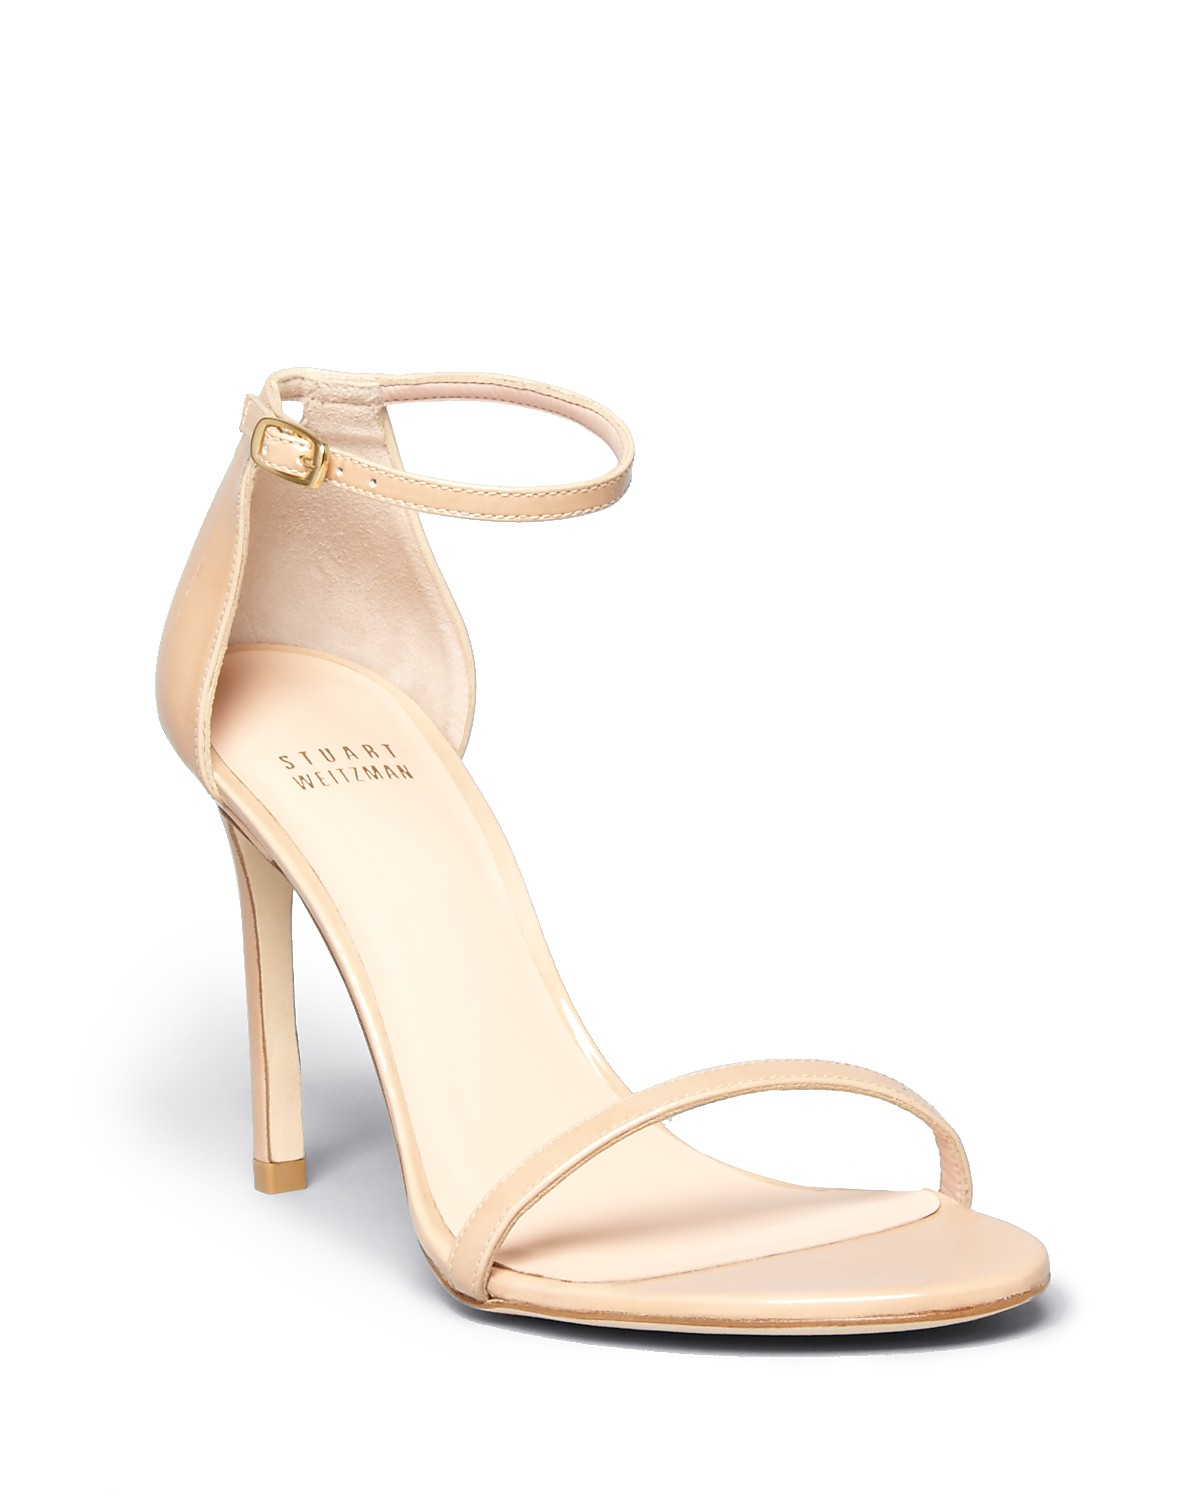 Stuart Weitzman Women's Nudistsong Patent Leather High Heel Sandals | Bloomingdale's